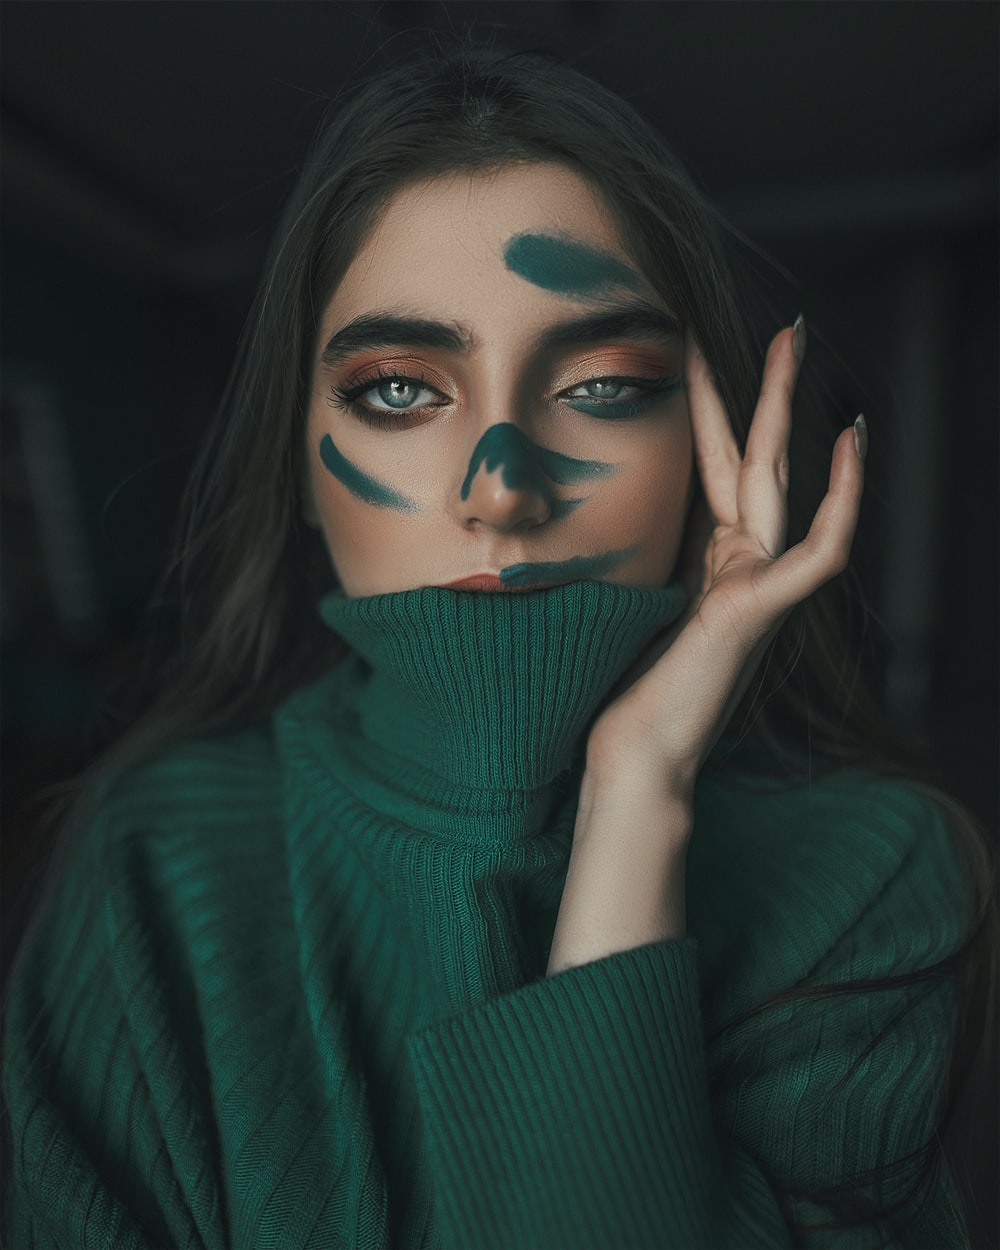 woman in green turtleneck sweater covering her face with her hand